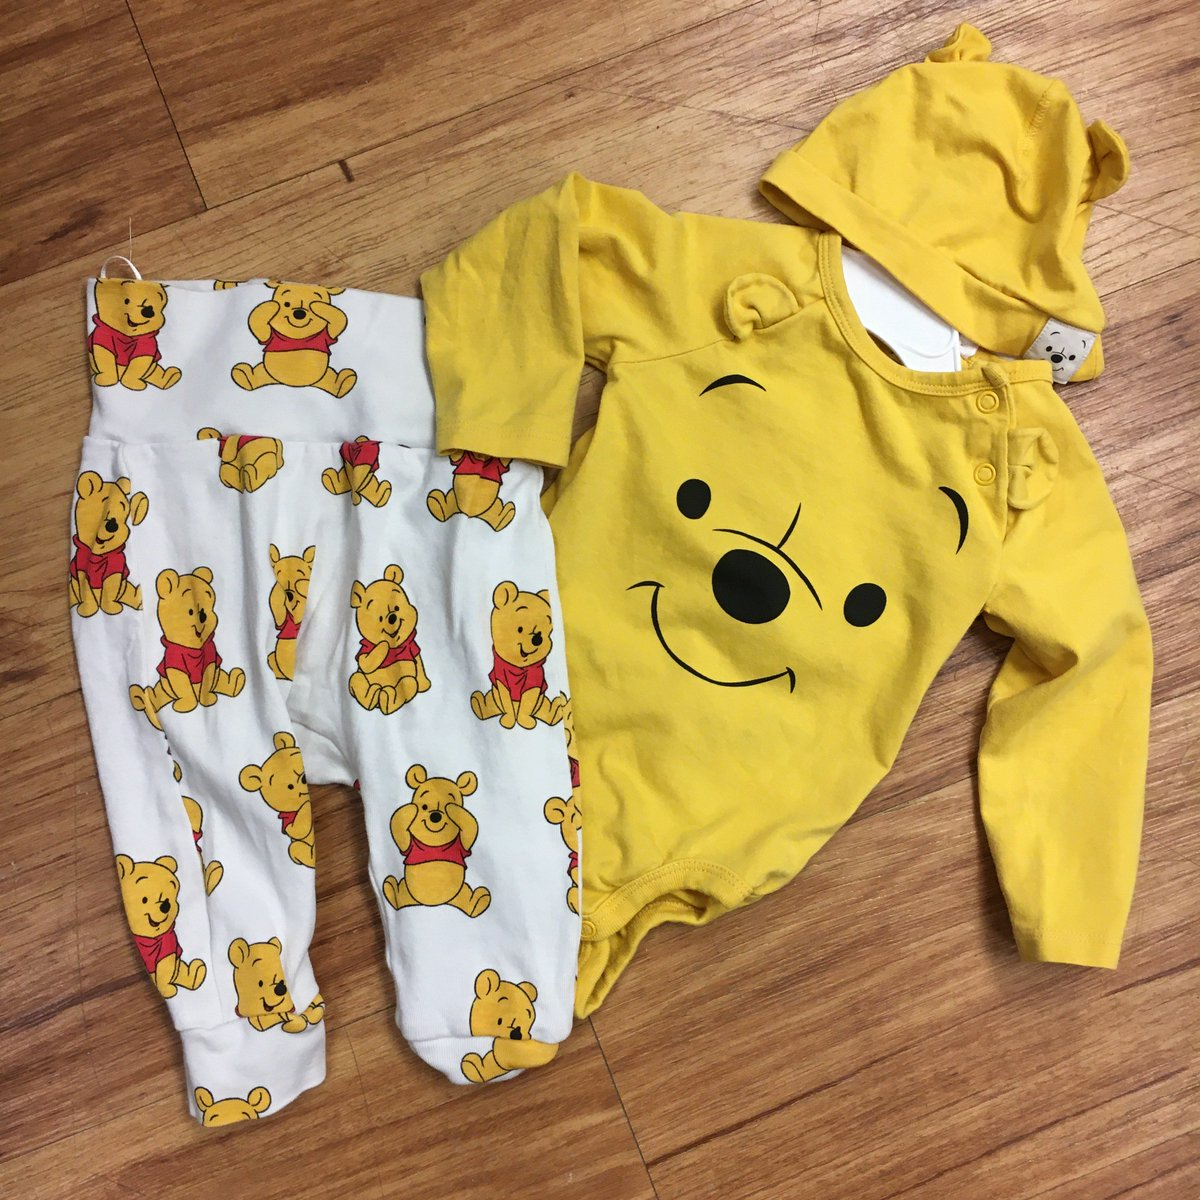 Set 3-6 months $5.50    # SAVEMORE @OuacCentennial #Newborn #Baby #Babies #Boys #Girls #Shoes #toddler #Consignment #GentlyUsed #Youth #Kids  #Tween #Infants #Clothing #Toys #Books #KidsClothes #BabyGear #BabyEquipment #ColoradoKids #buykidsclothes #sellkidsclothes